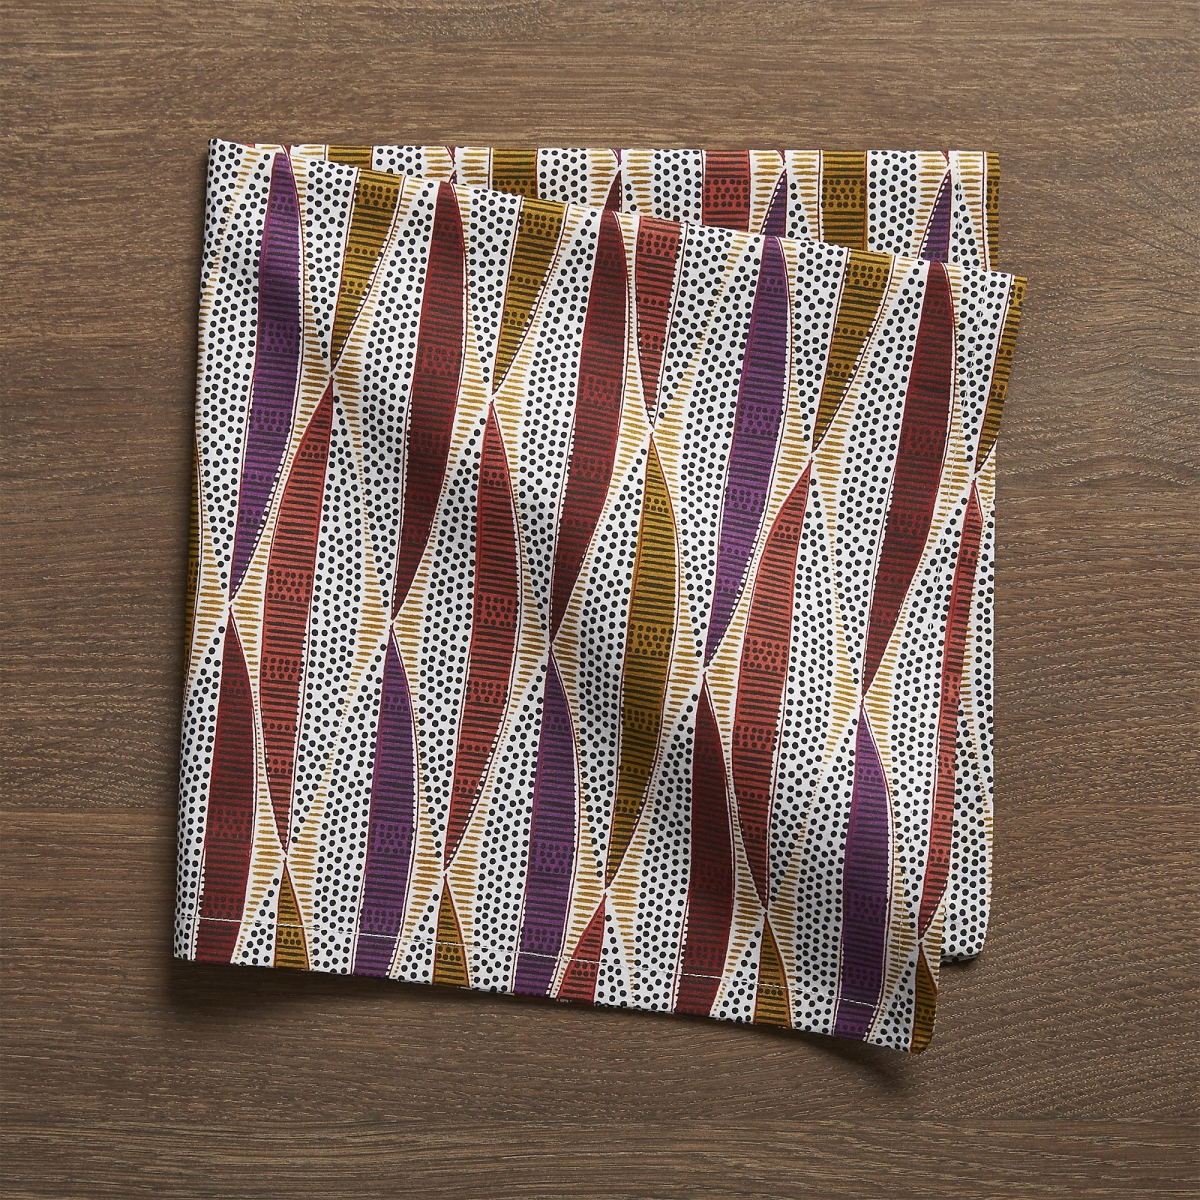 Cloth dinner napkin in fall colors